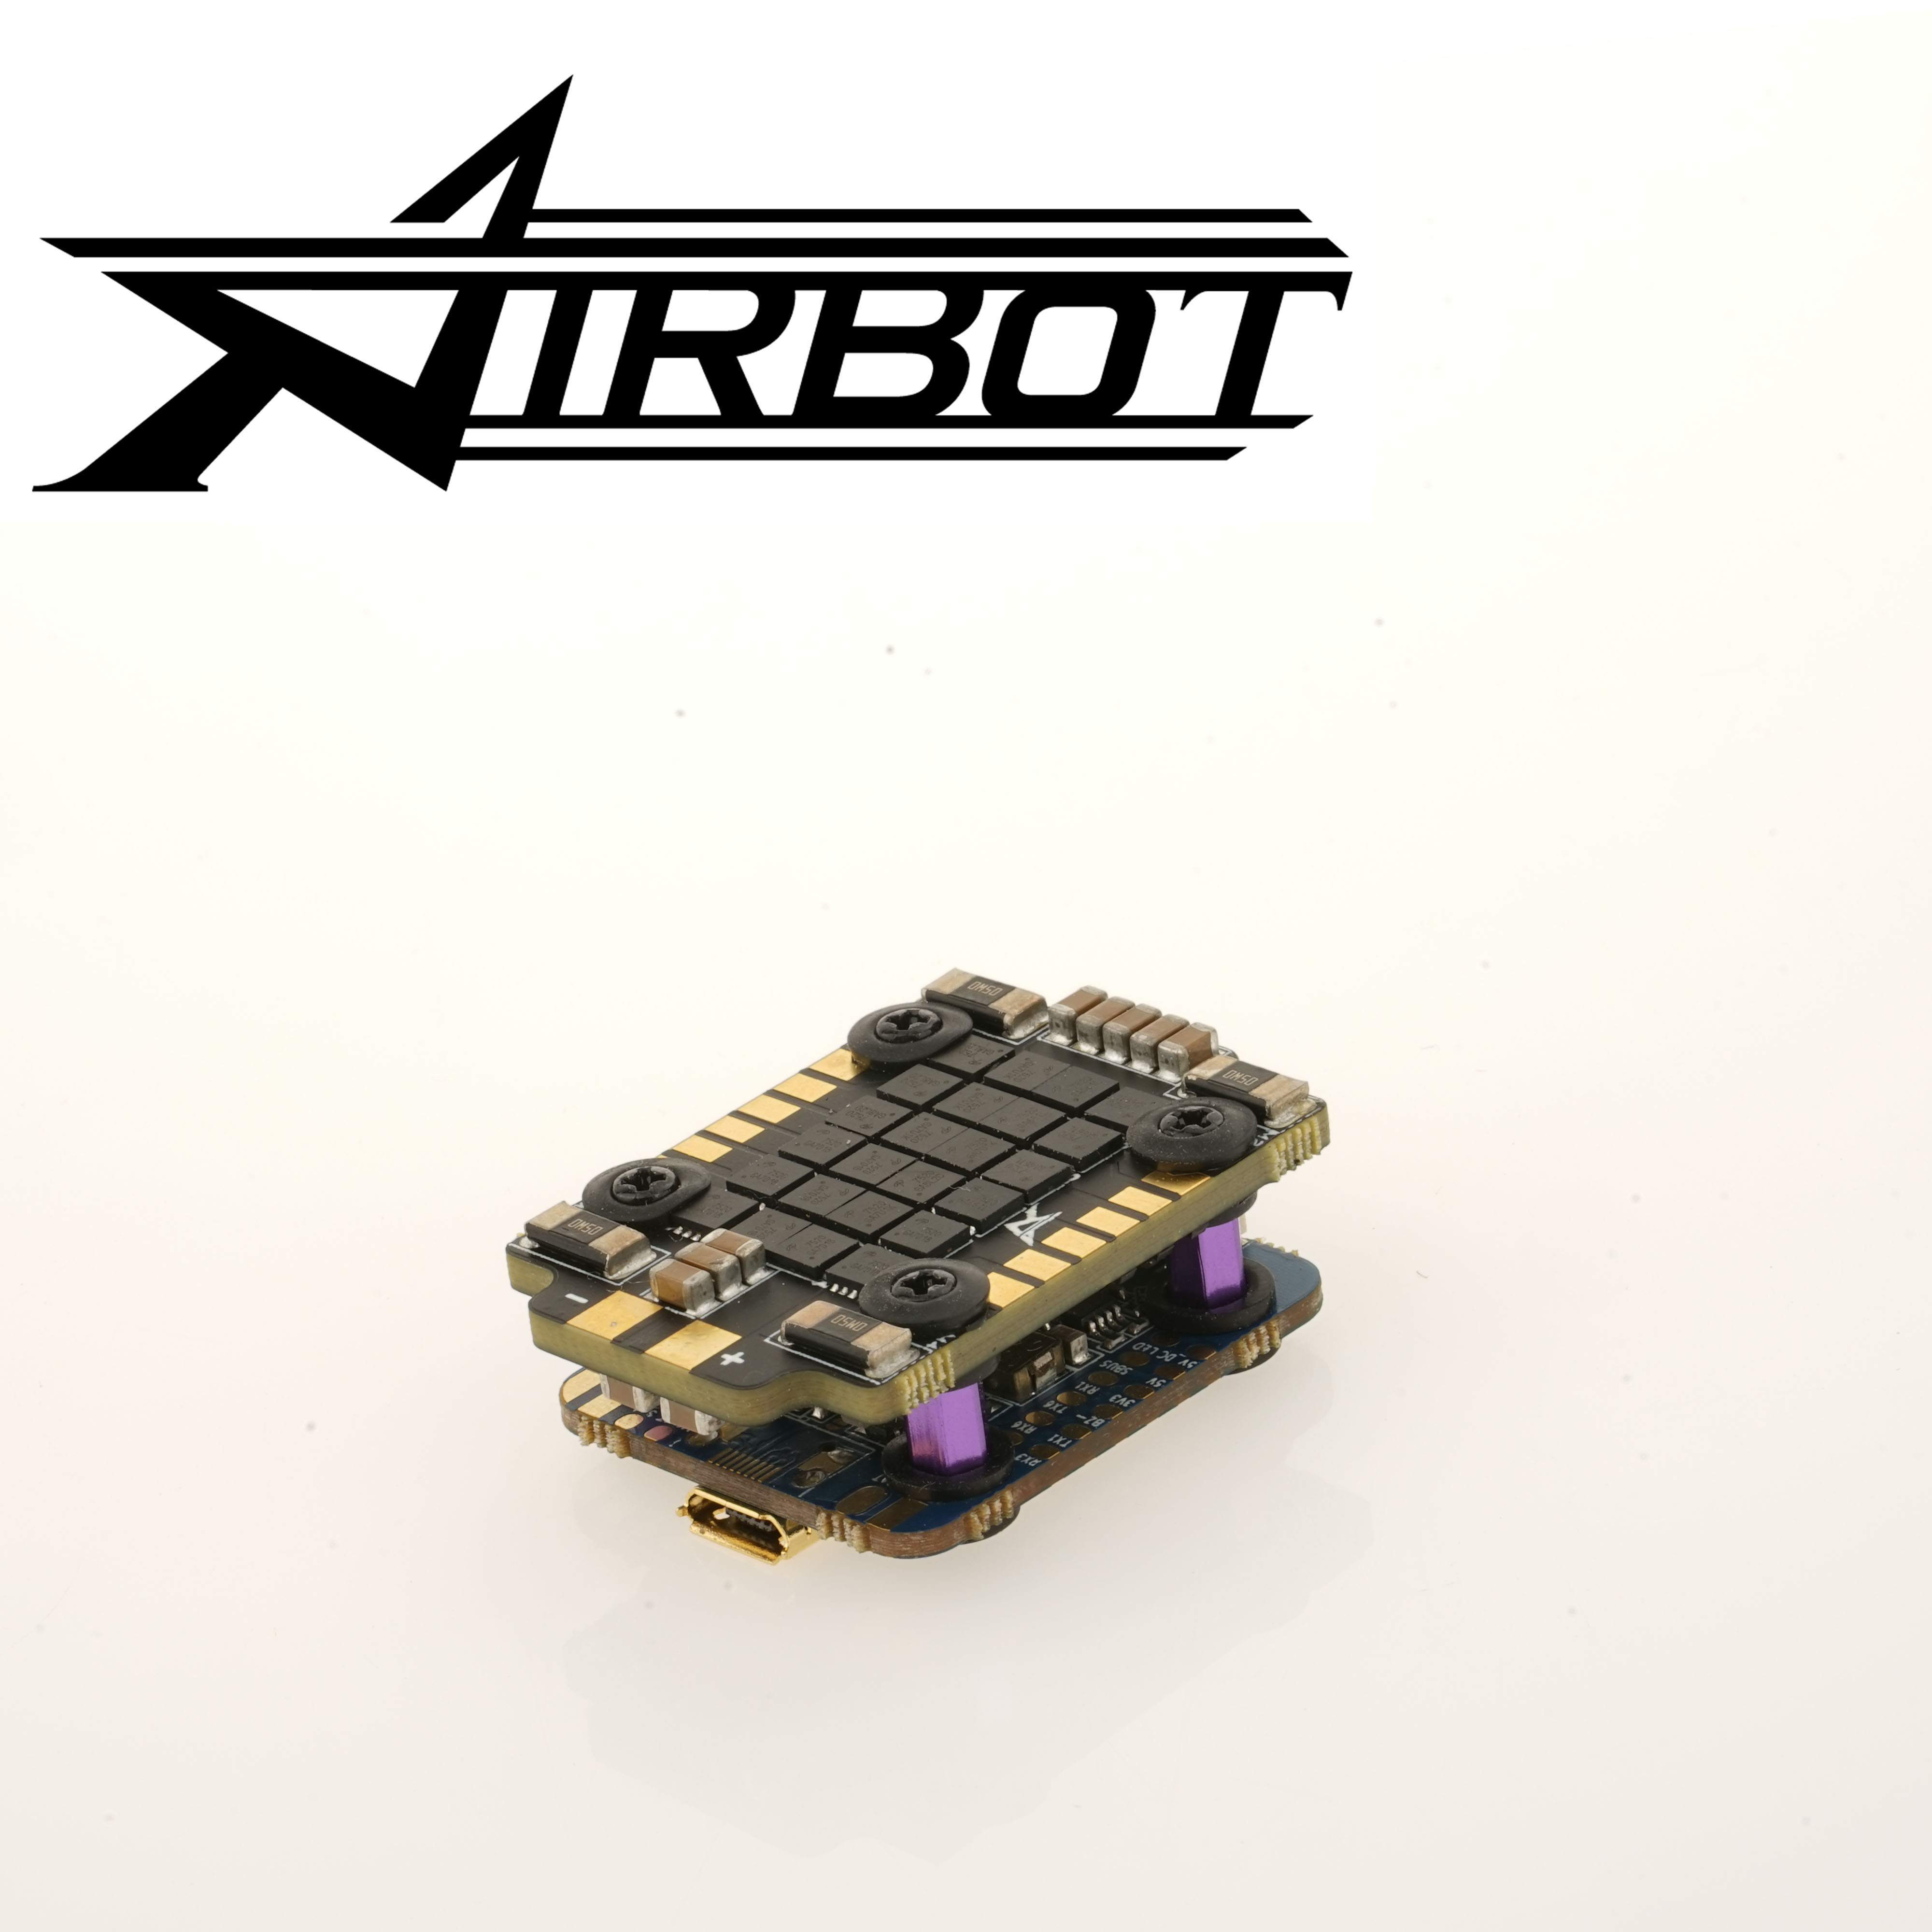 RC Quadcopter ESC Airbot Omnibus F4 Nano Flight Controller with LC Filter & Ori32 4 In 1 25A Brushless ESC kitchen princess omnibus 1